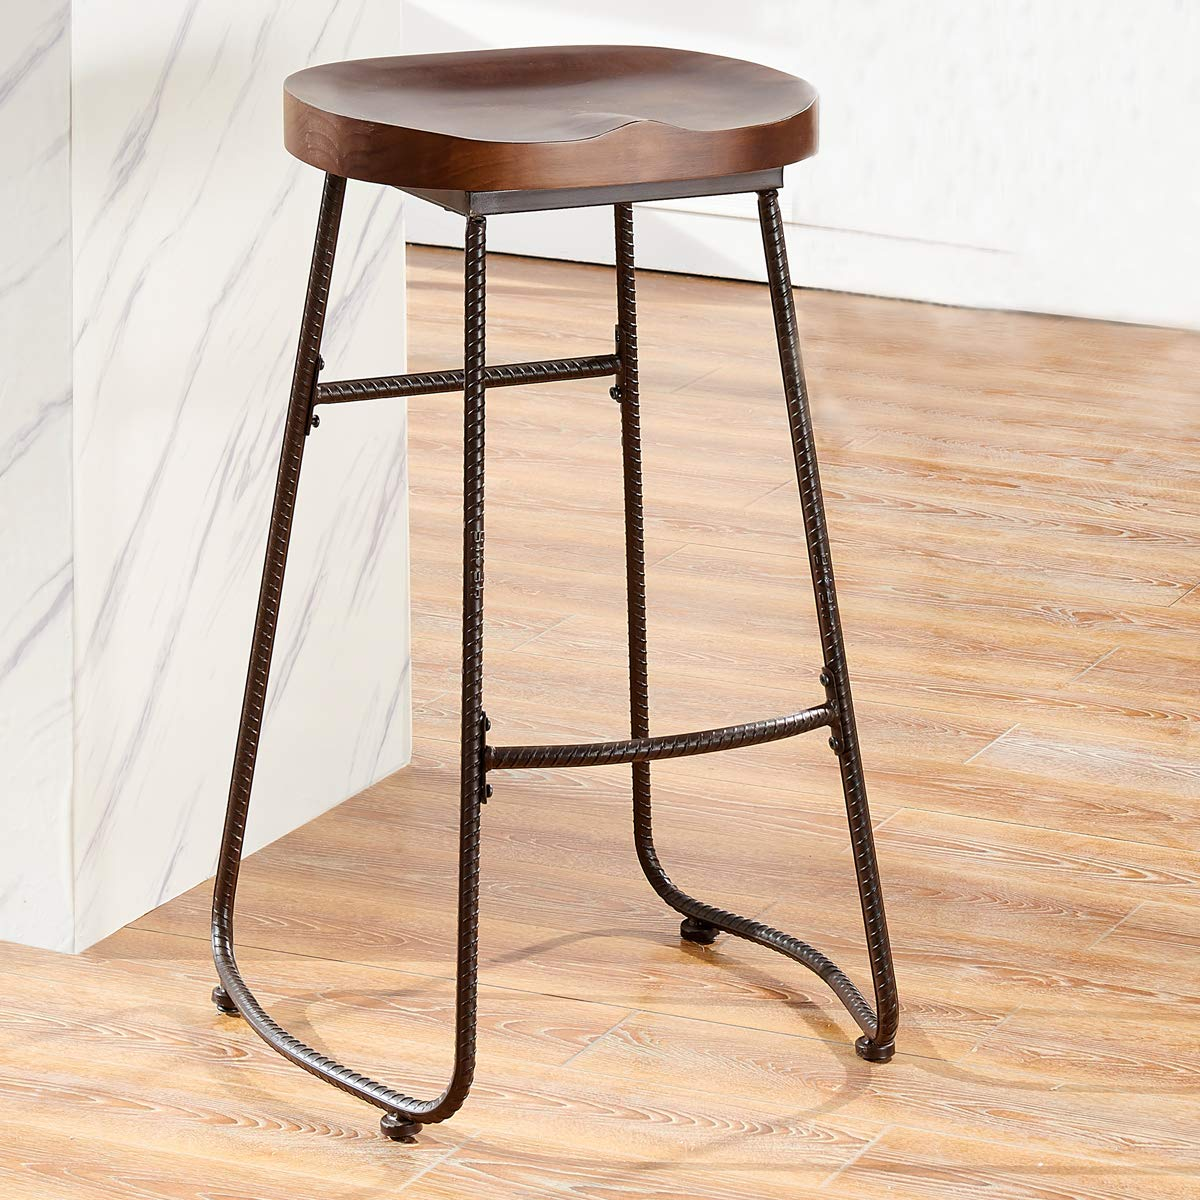 CDM product O&K FURNITURE 30-Inch Retro Bar Stool Kitchen Chair, Backless Counter Stool with Saddle Seat, Rustic Brown (1-PC) big image